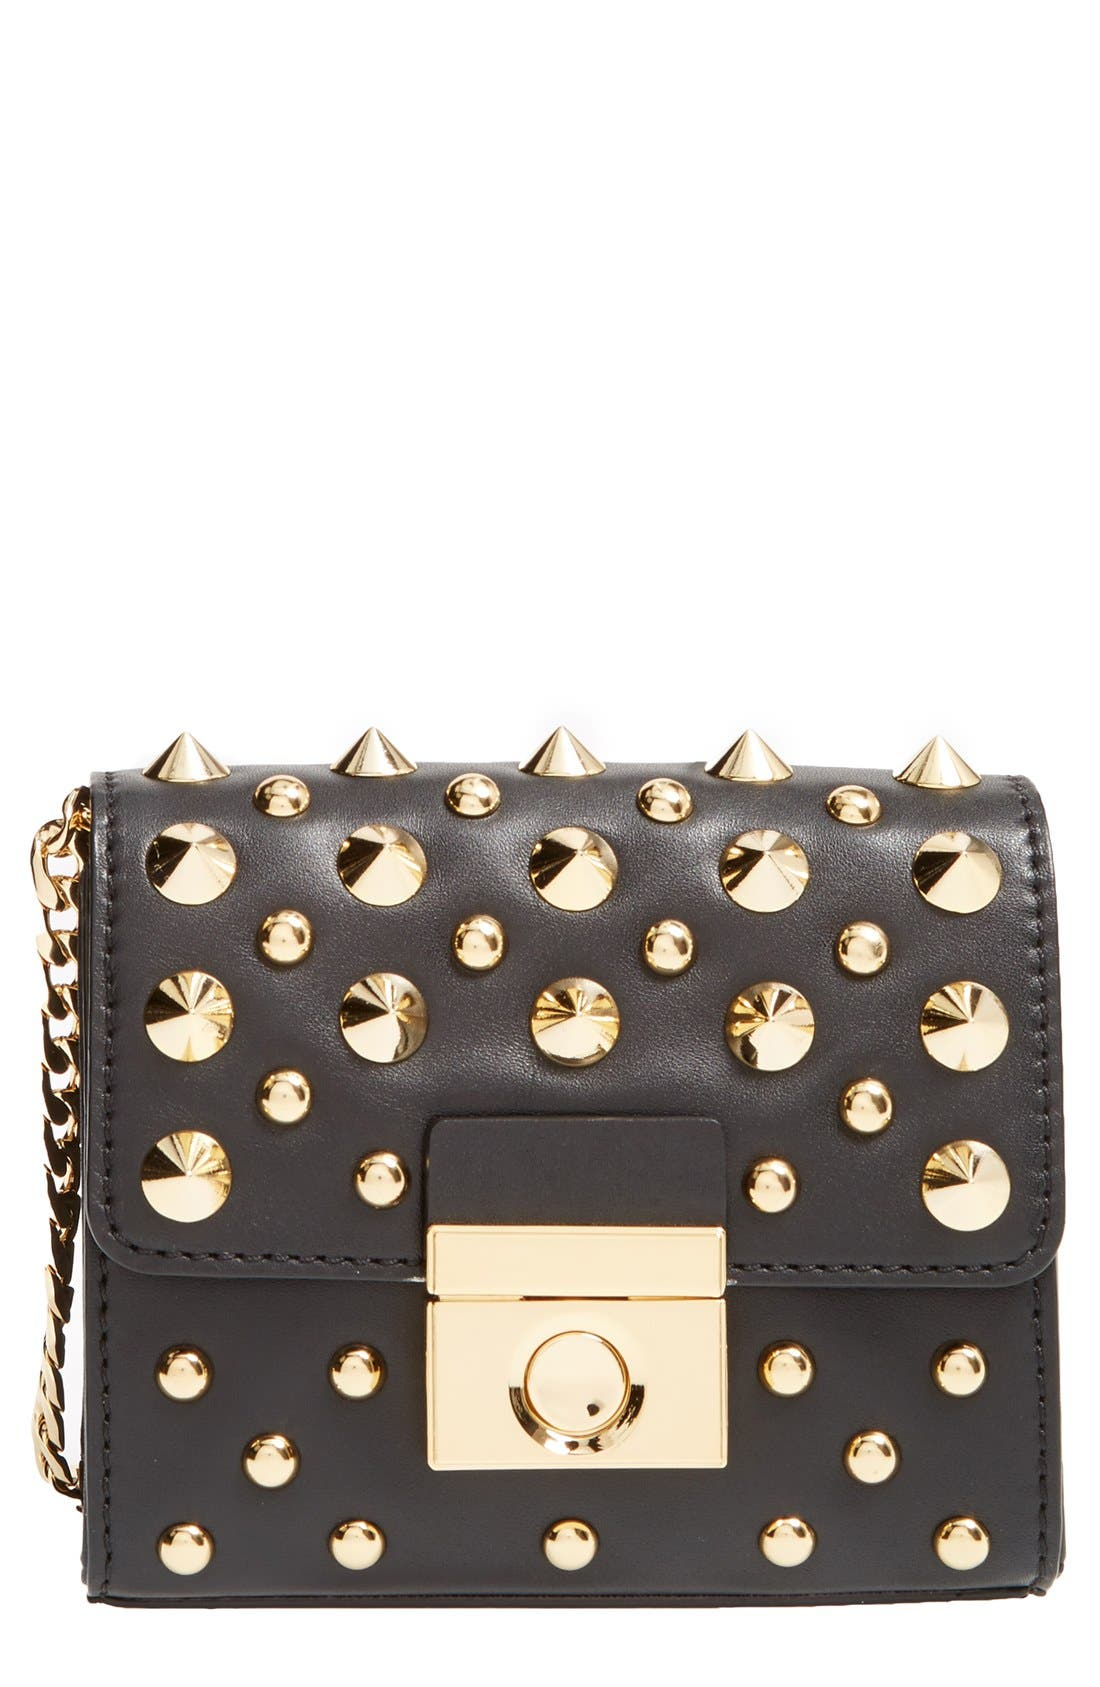 Alternate Image 1 Selected - Milly 'Mini Sienna - Studs' Convertible Crossbody Clutch